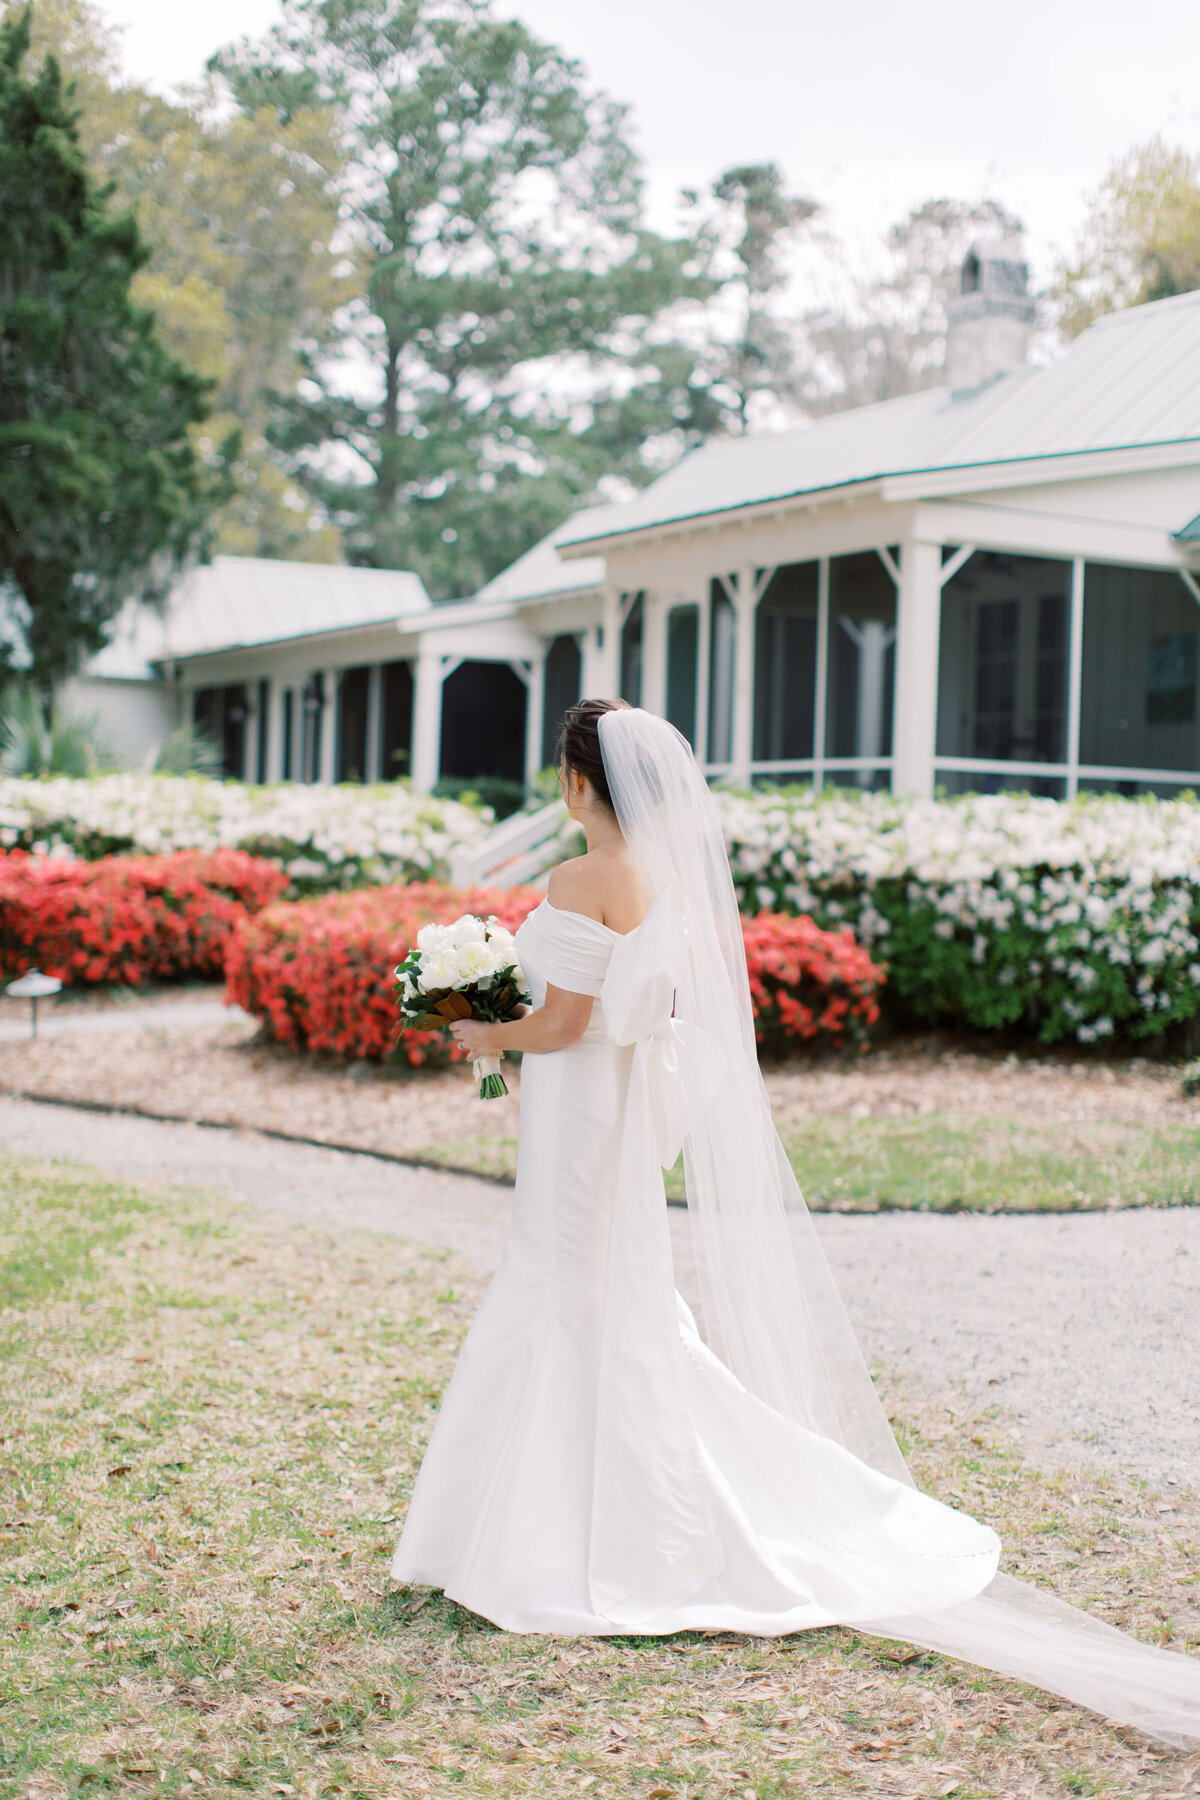 Powell_Oldfield_River_Club_Bluffton_South_Carolina_Beaufort_Savannah_Wedding_Jacksonville_Florida_Devon_Donnahoo_Photography_0116